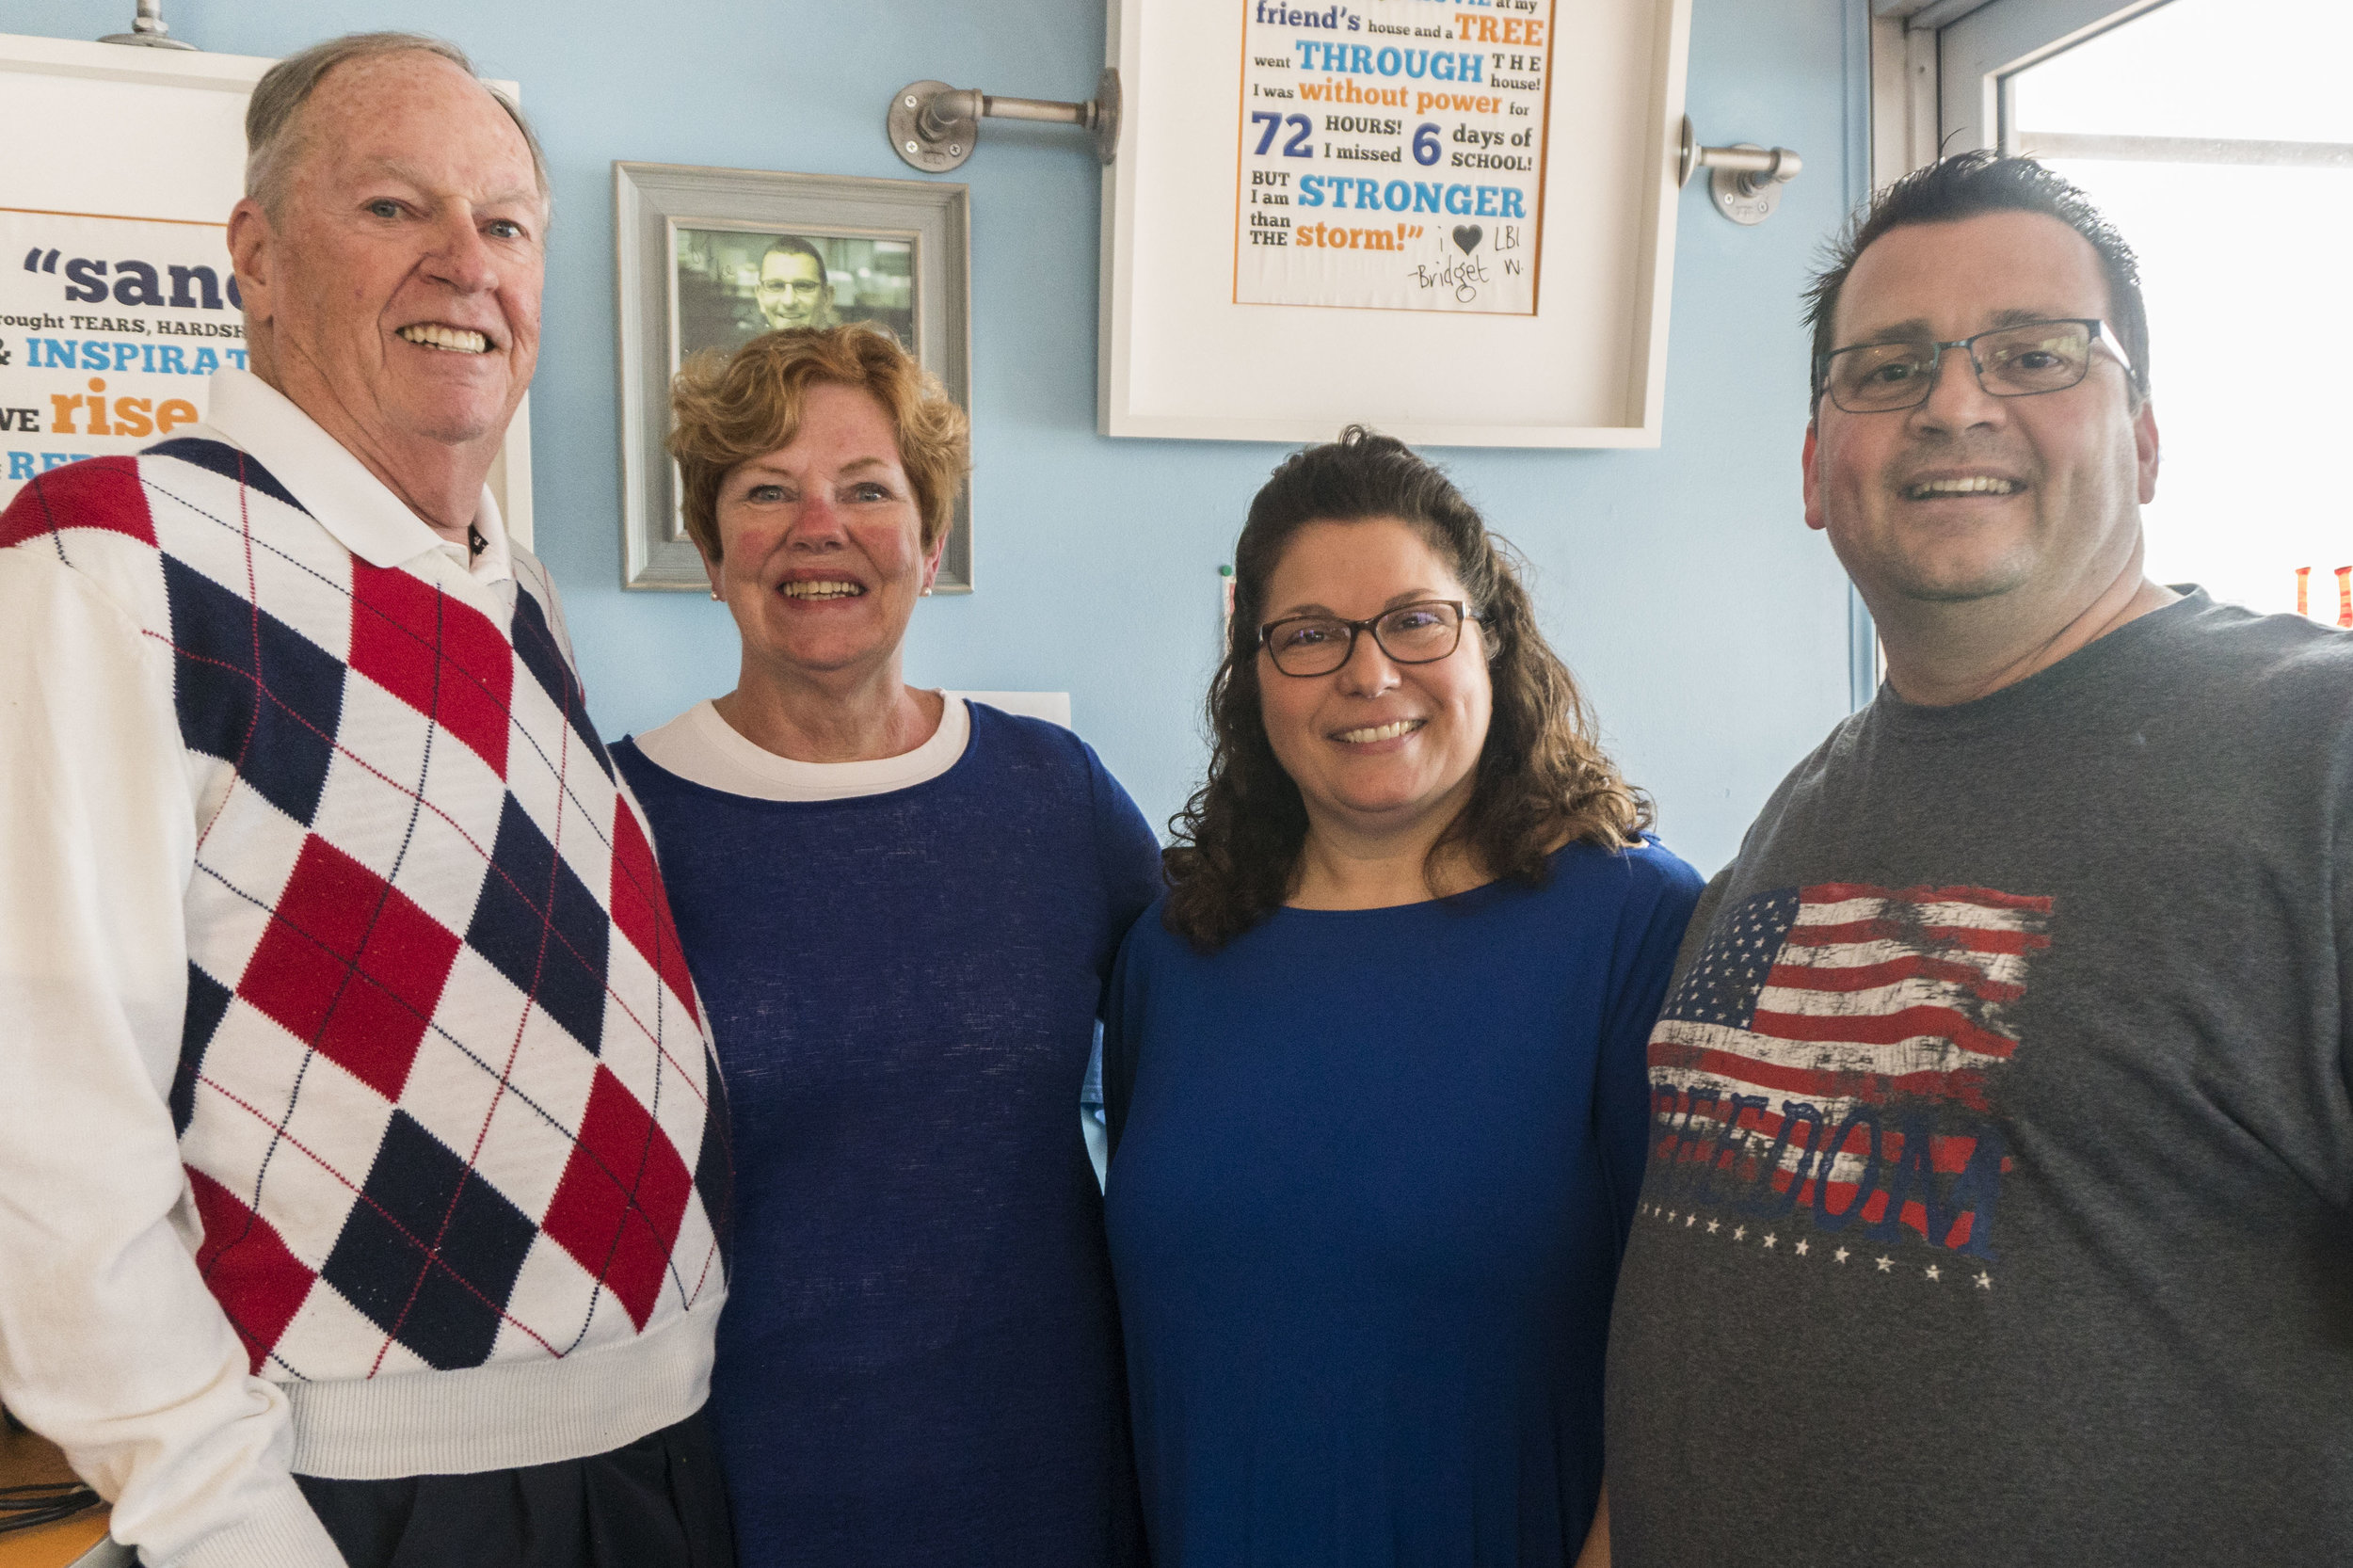 Bill and Carole Waldron (left) are the former owners of the LBI Pancake House. They sold the iconic breakfast spot to Christine and Victor Bilcik (right) in May of 2018.